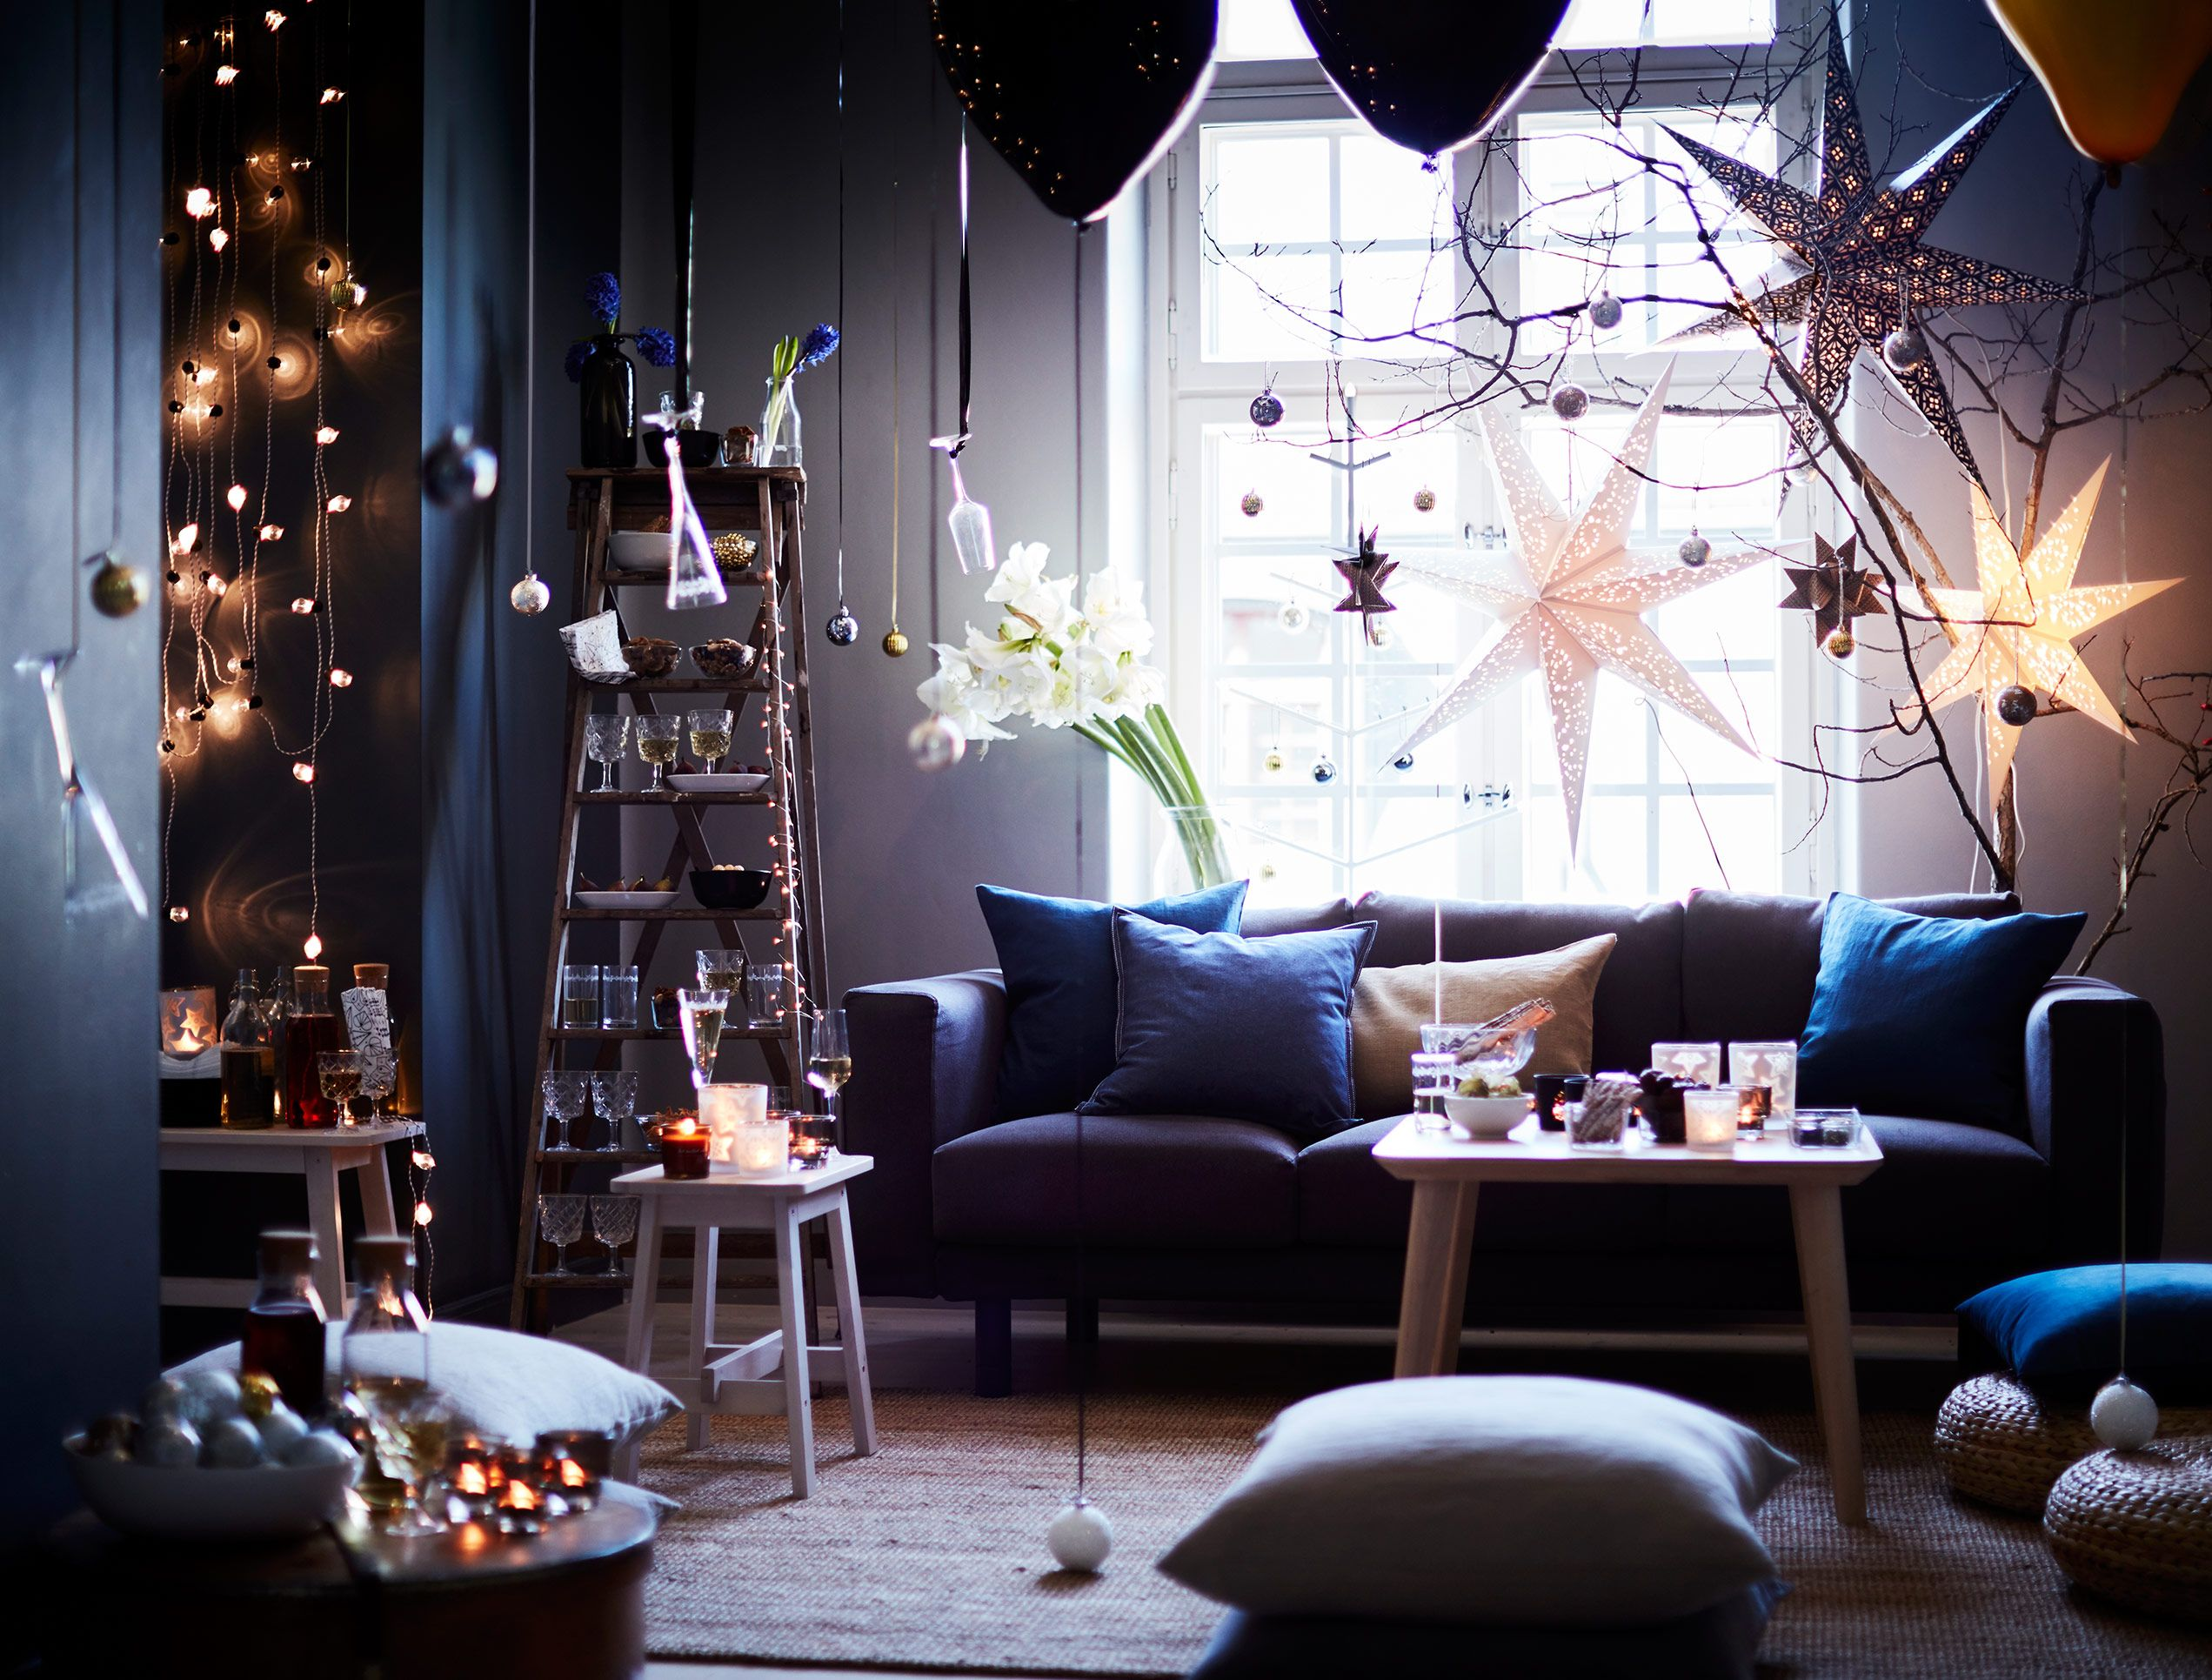 Host the party of the year The new WINTER collection is here IKEA